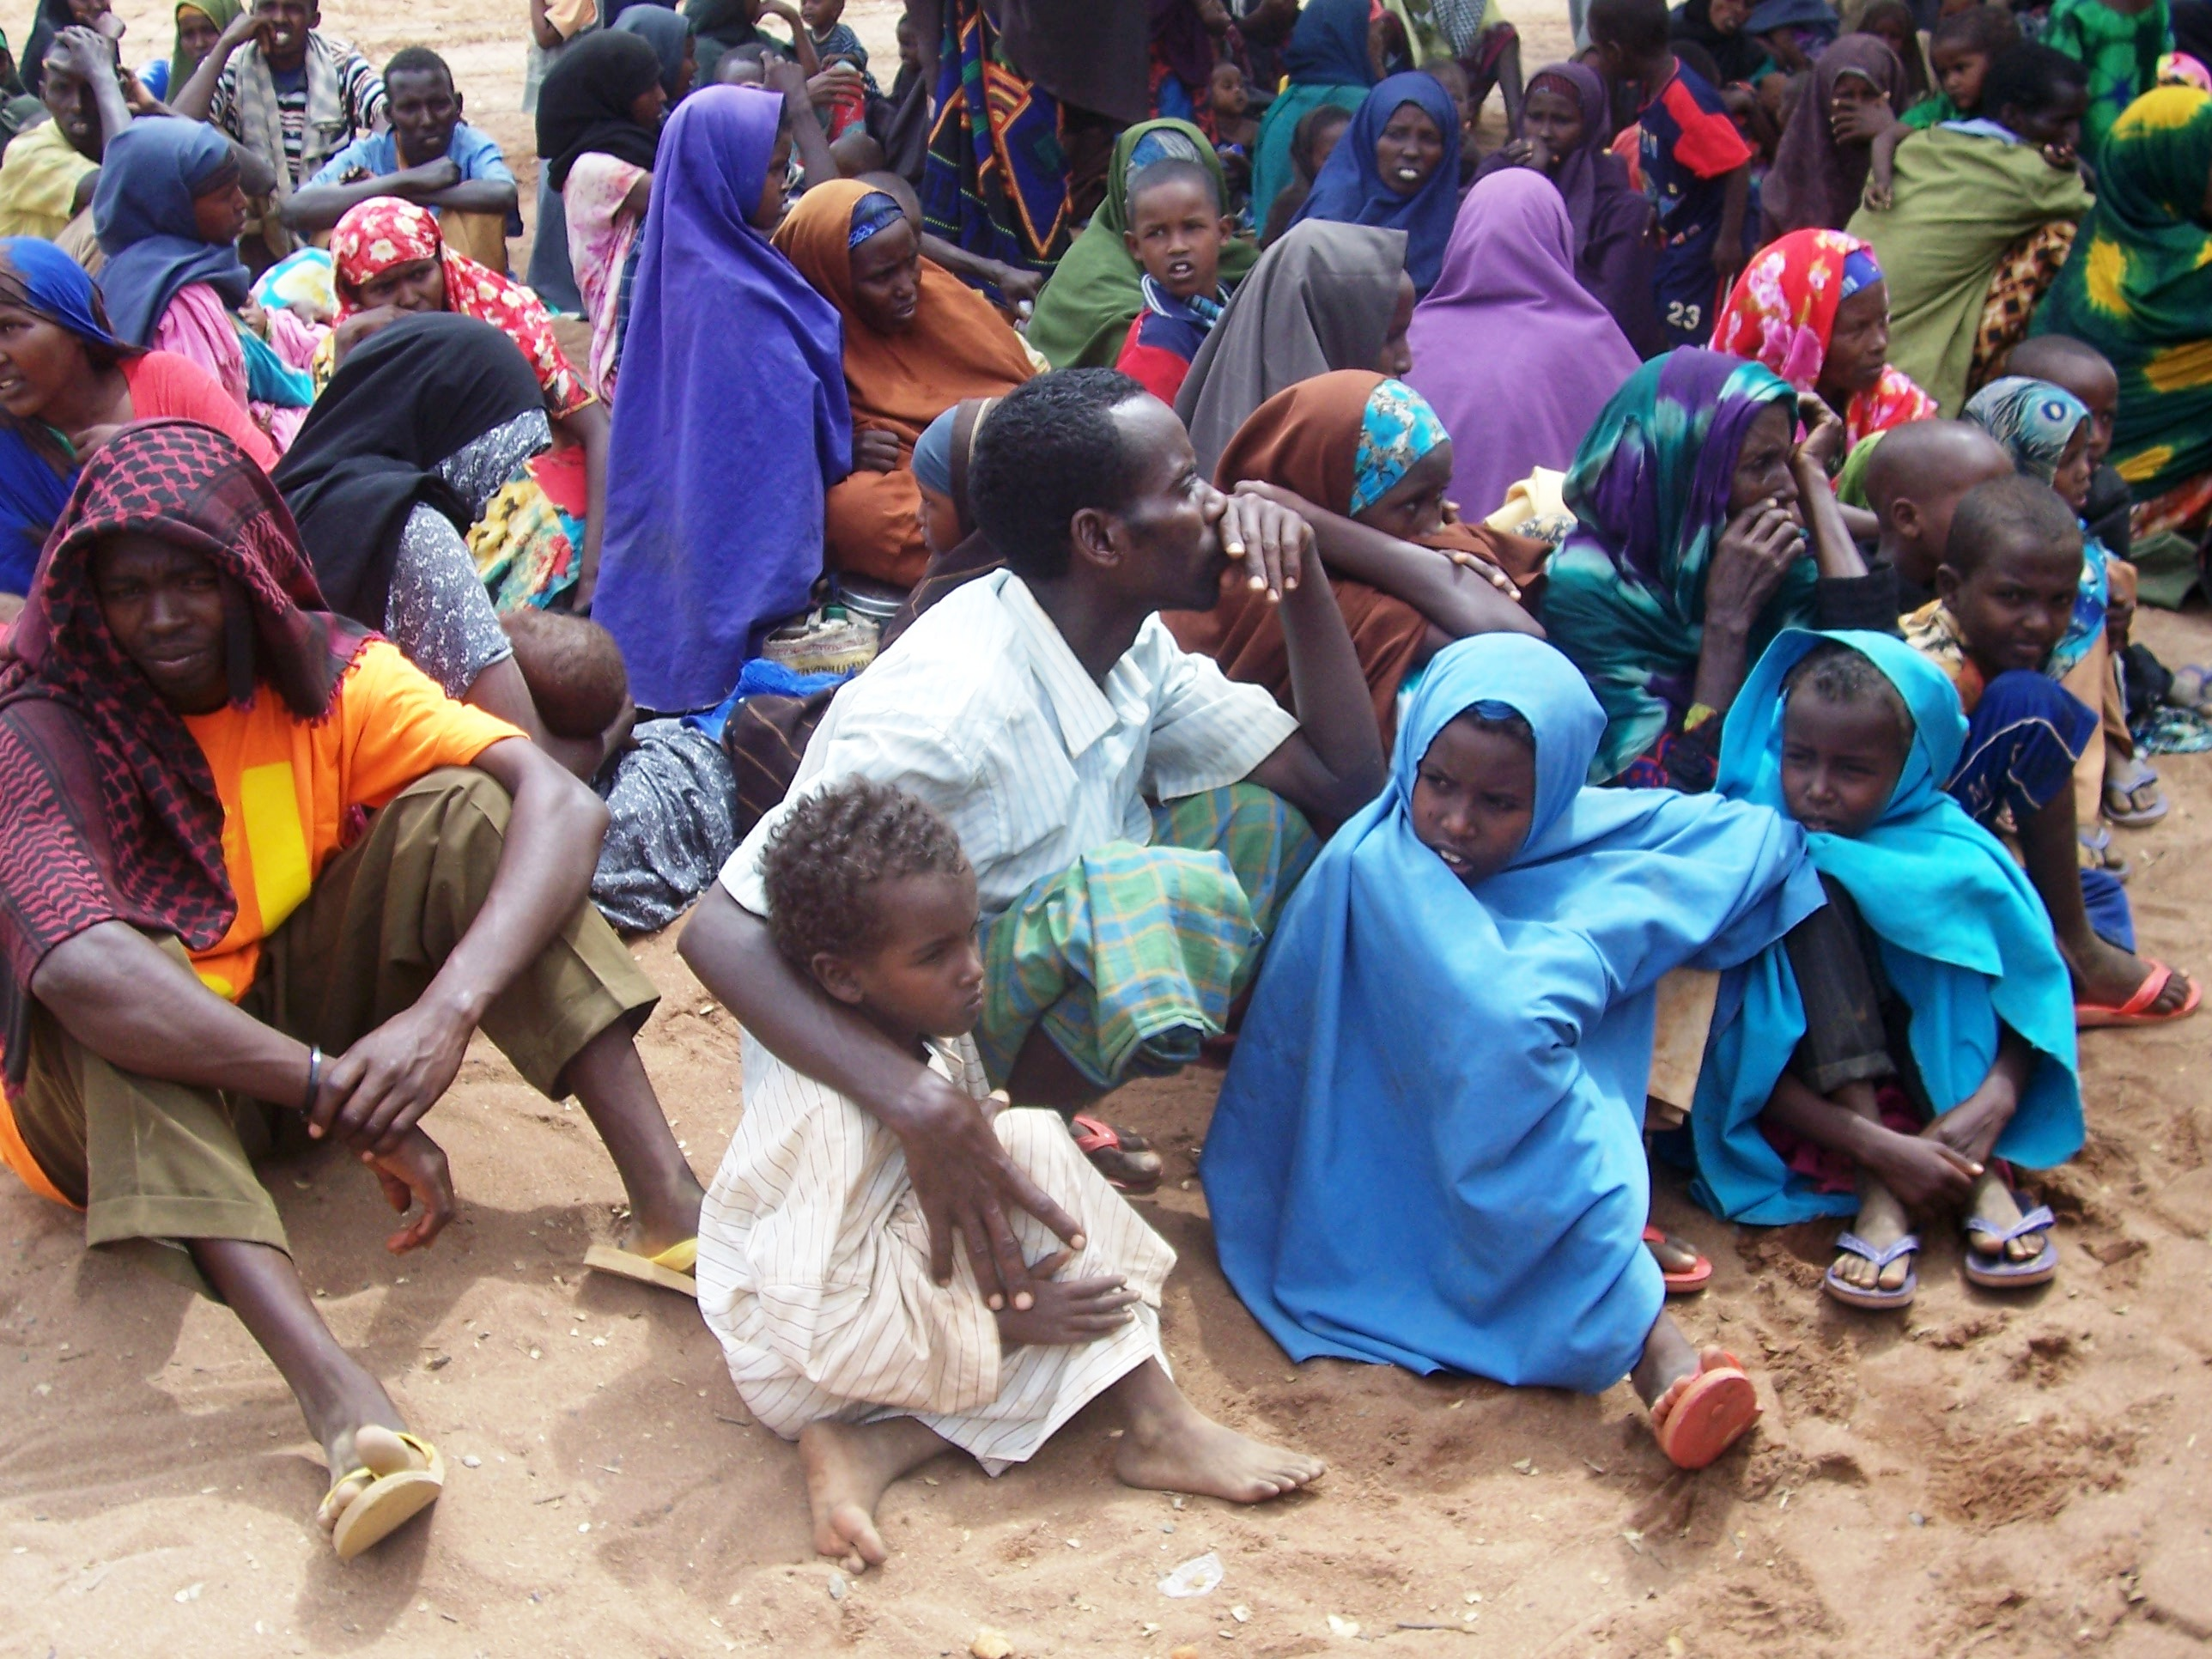 Refugees wait to be registered at northeastern Kenya's Dadaab Refugee Camp